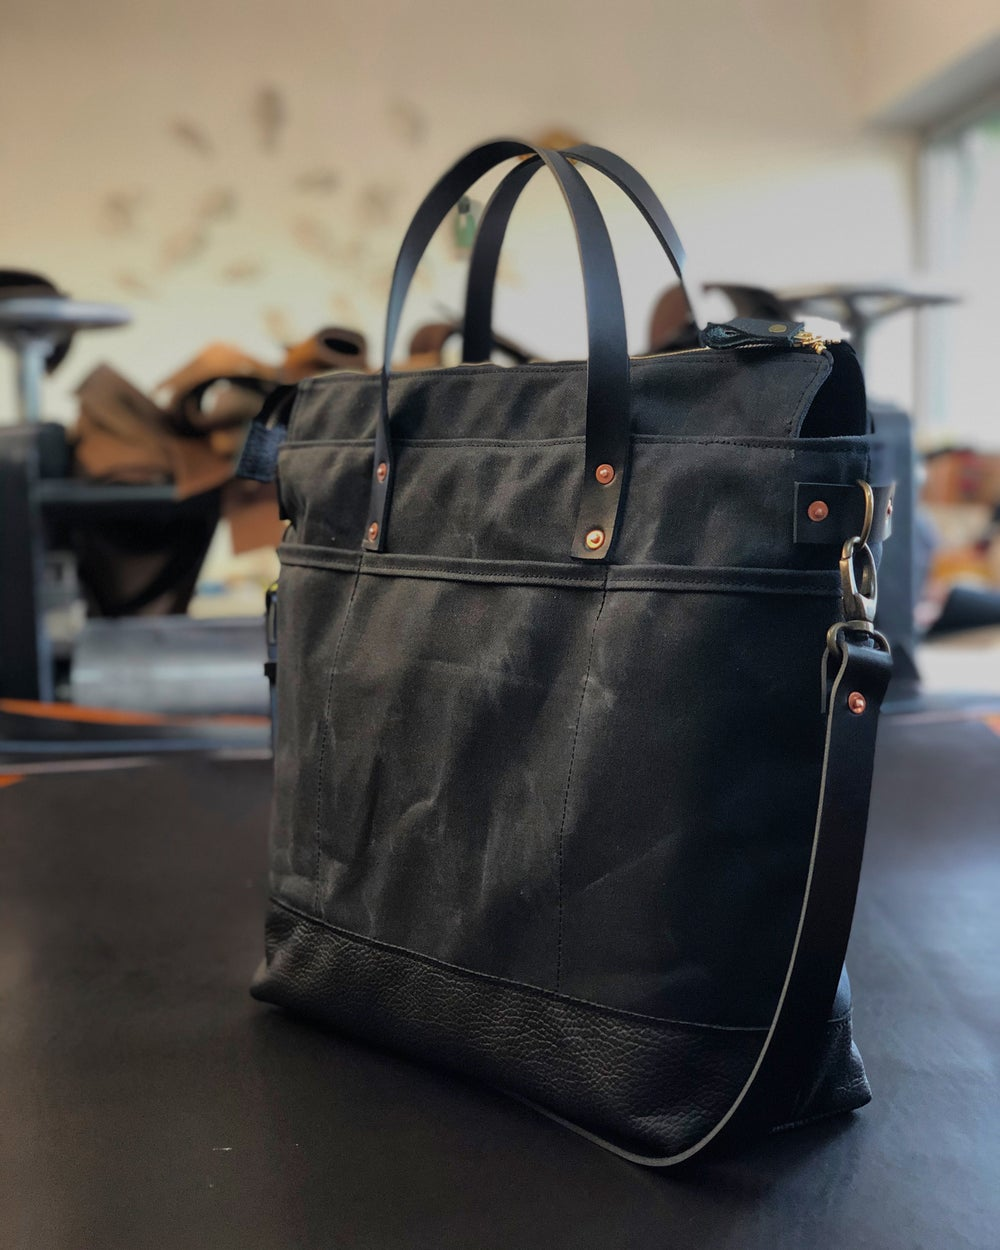 Image of Black waxed canvas tote bag / office bag with luggage handle attachment leather handles and shoulder